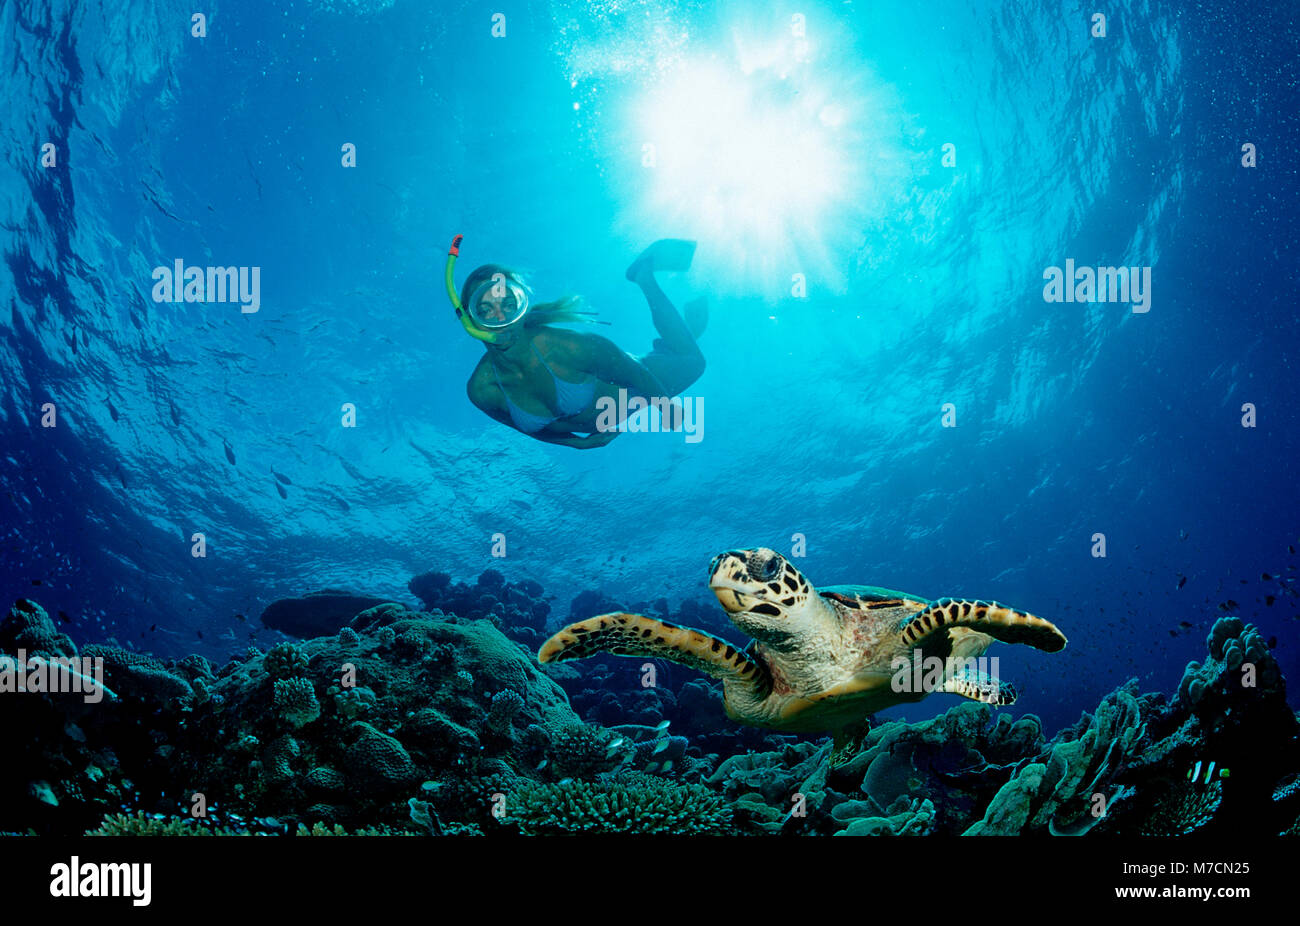 Hawksbill Turtle and Skin Diver, Eretmochelys imbricata, Maldives, Indian Ocean, Meemu Atoll - Stock Image